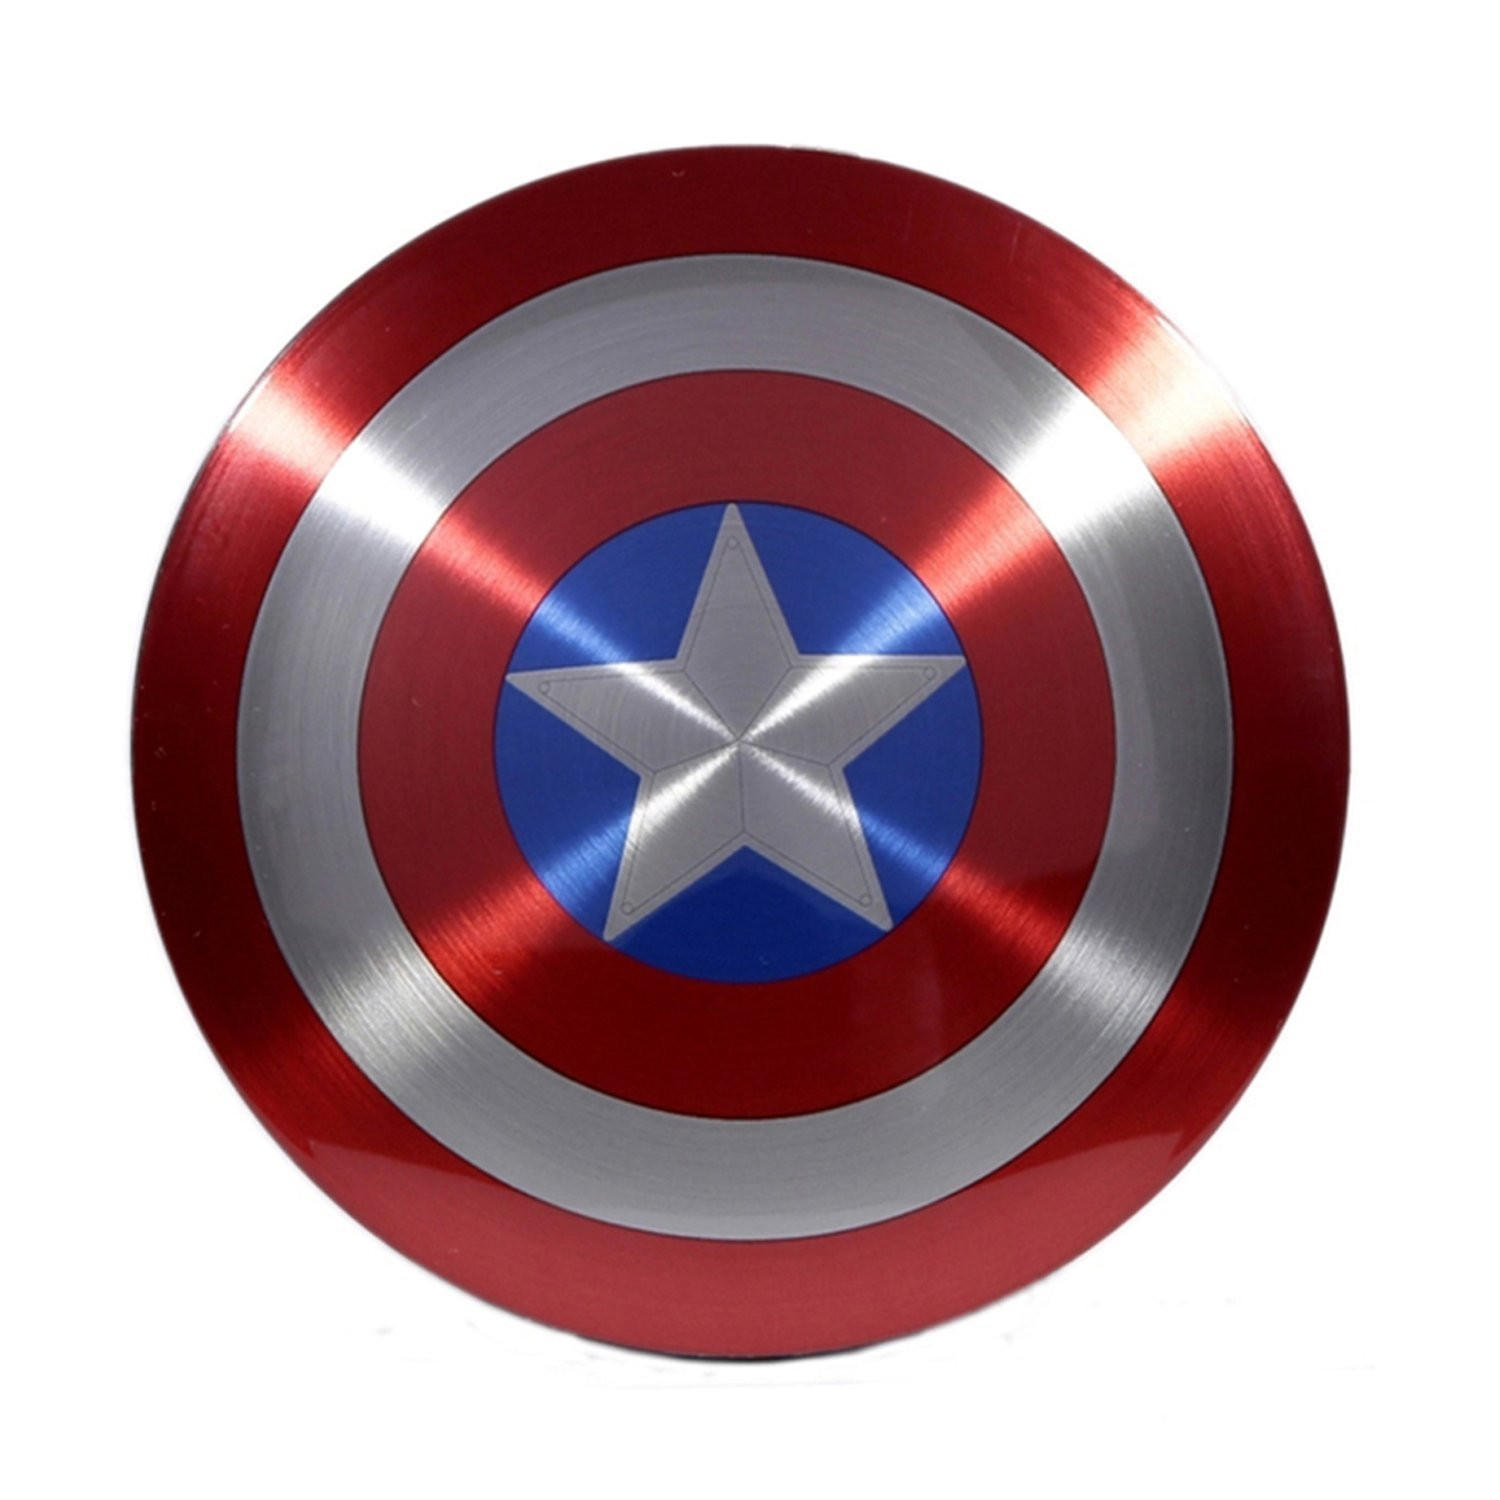 Marvel Captain America Shield 6800mah From Kidult City